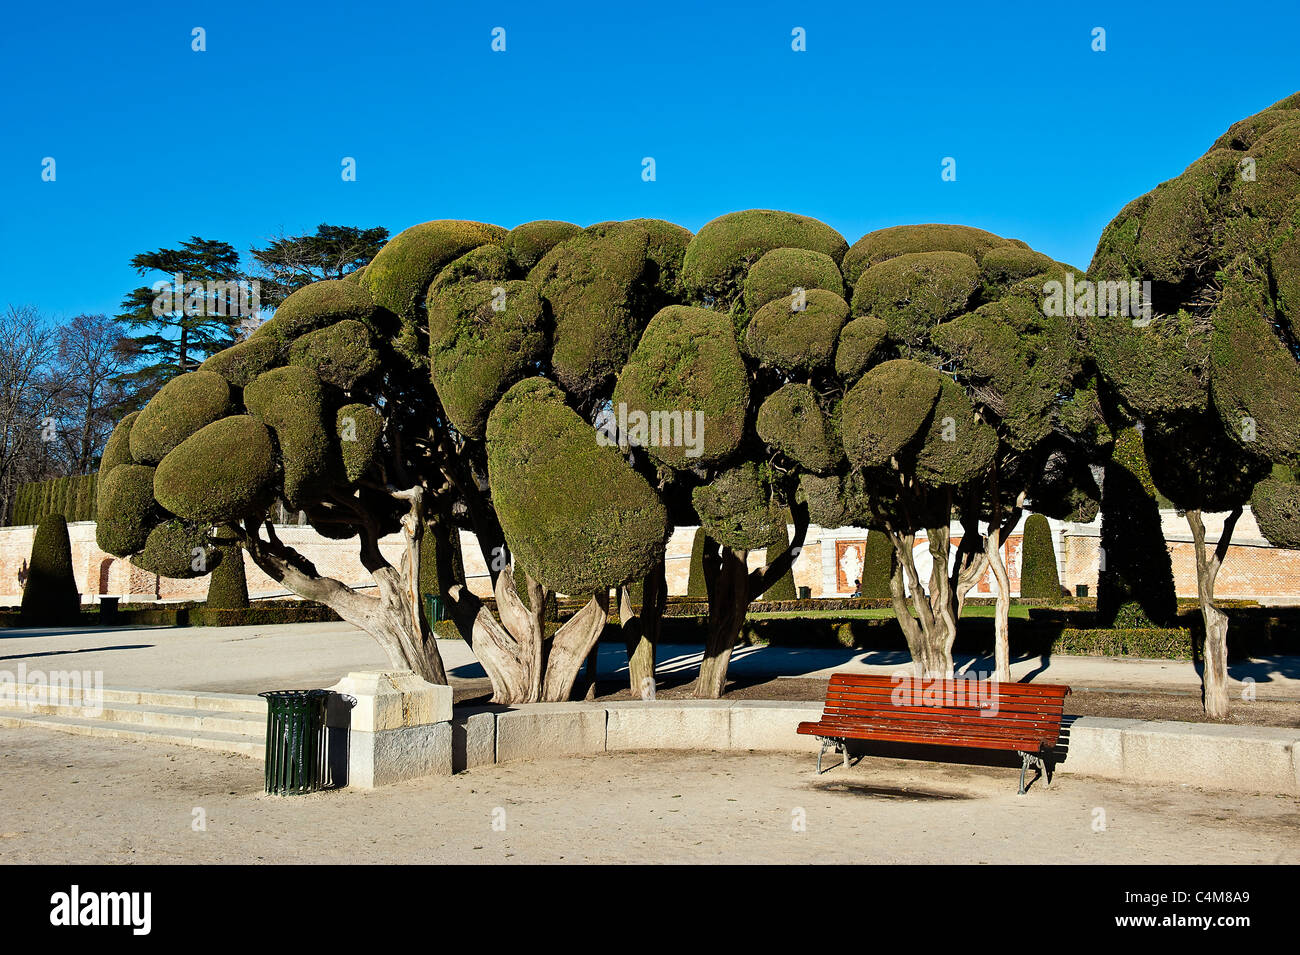 Sculpted trees, Retiro Park, Madrid, Spain - Stock Image